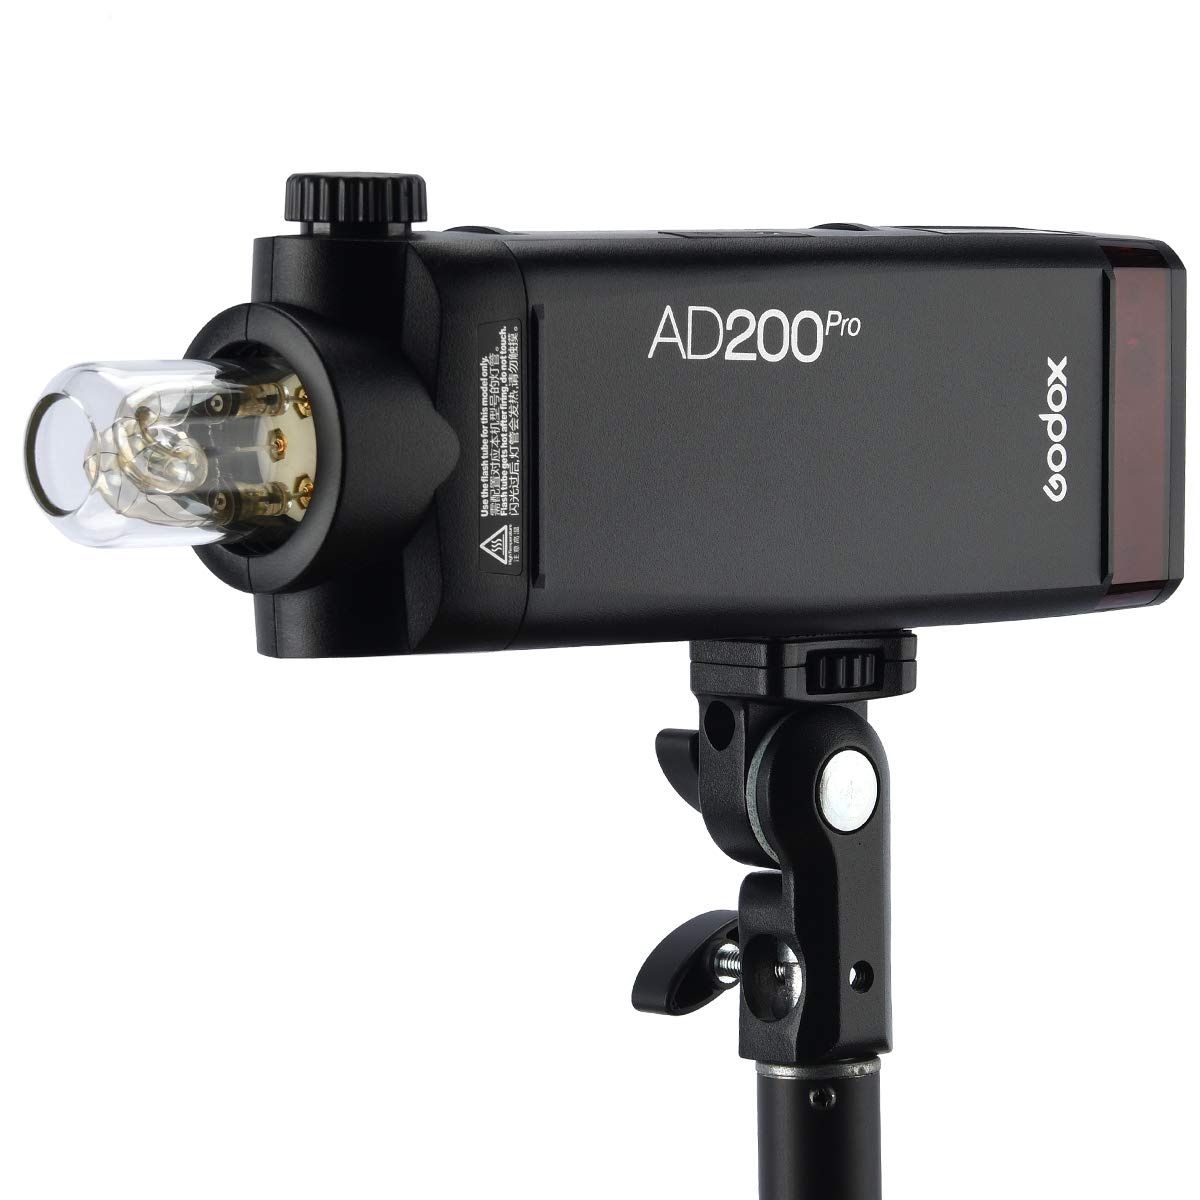 Godox AD200Pro 200ws 2.4G TTL Speedlite Flash Strobe 1/8000 HSS Monolight,500 Full Power Flashes, 2900mAh Battery,0.01-2.1s Recycling, Bare Bulb/Speedlite Fresnel Flash Head (AD200 Upgrade Version) by Godox (Image #5)